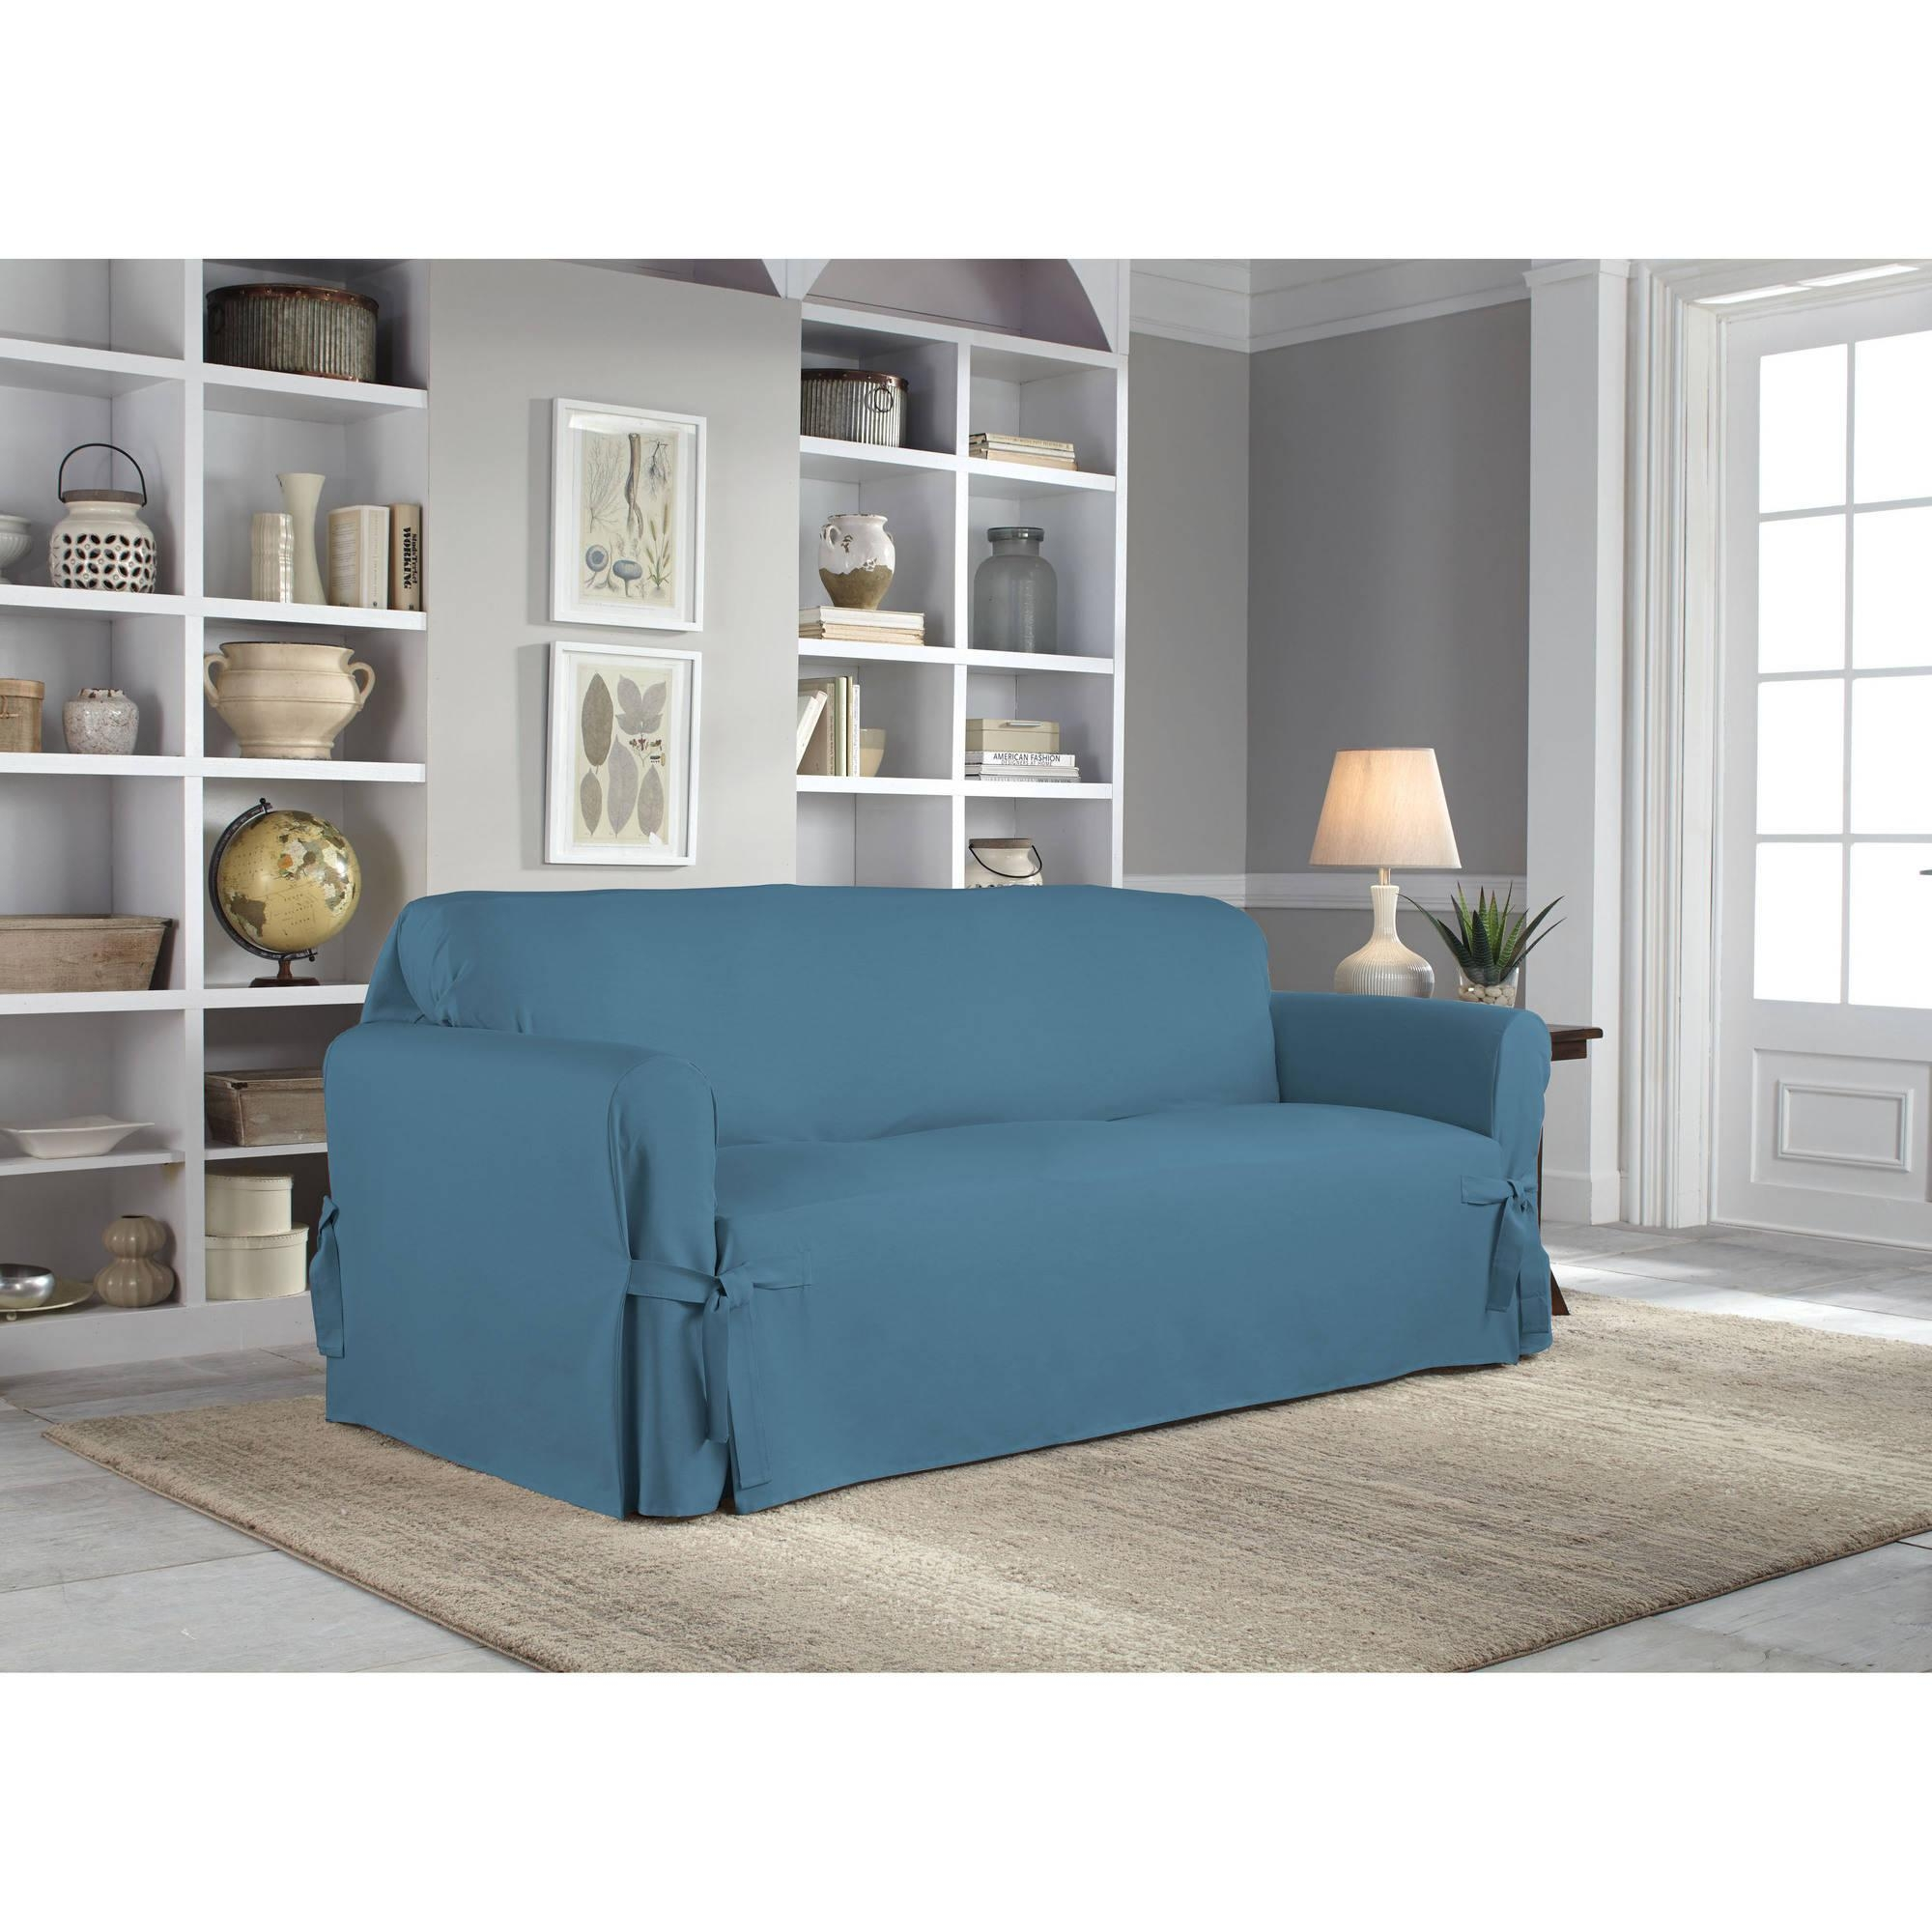 Serta Relaxed Fit Duck Furniture Slipcover, Sofa 1 Piece Box For Teal Sofa Slipcovers (Image 18 of 20)